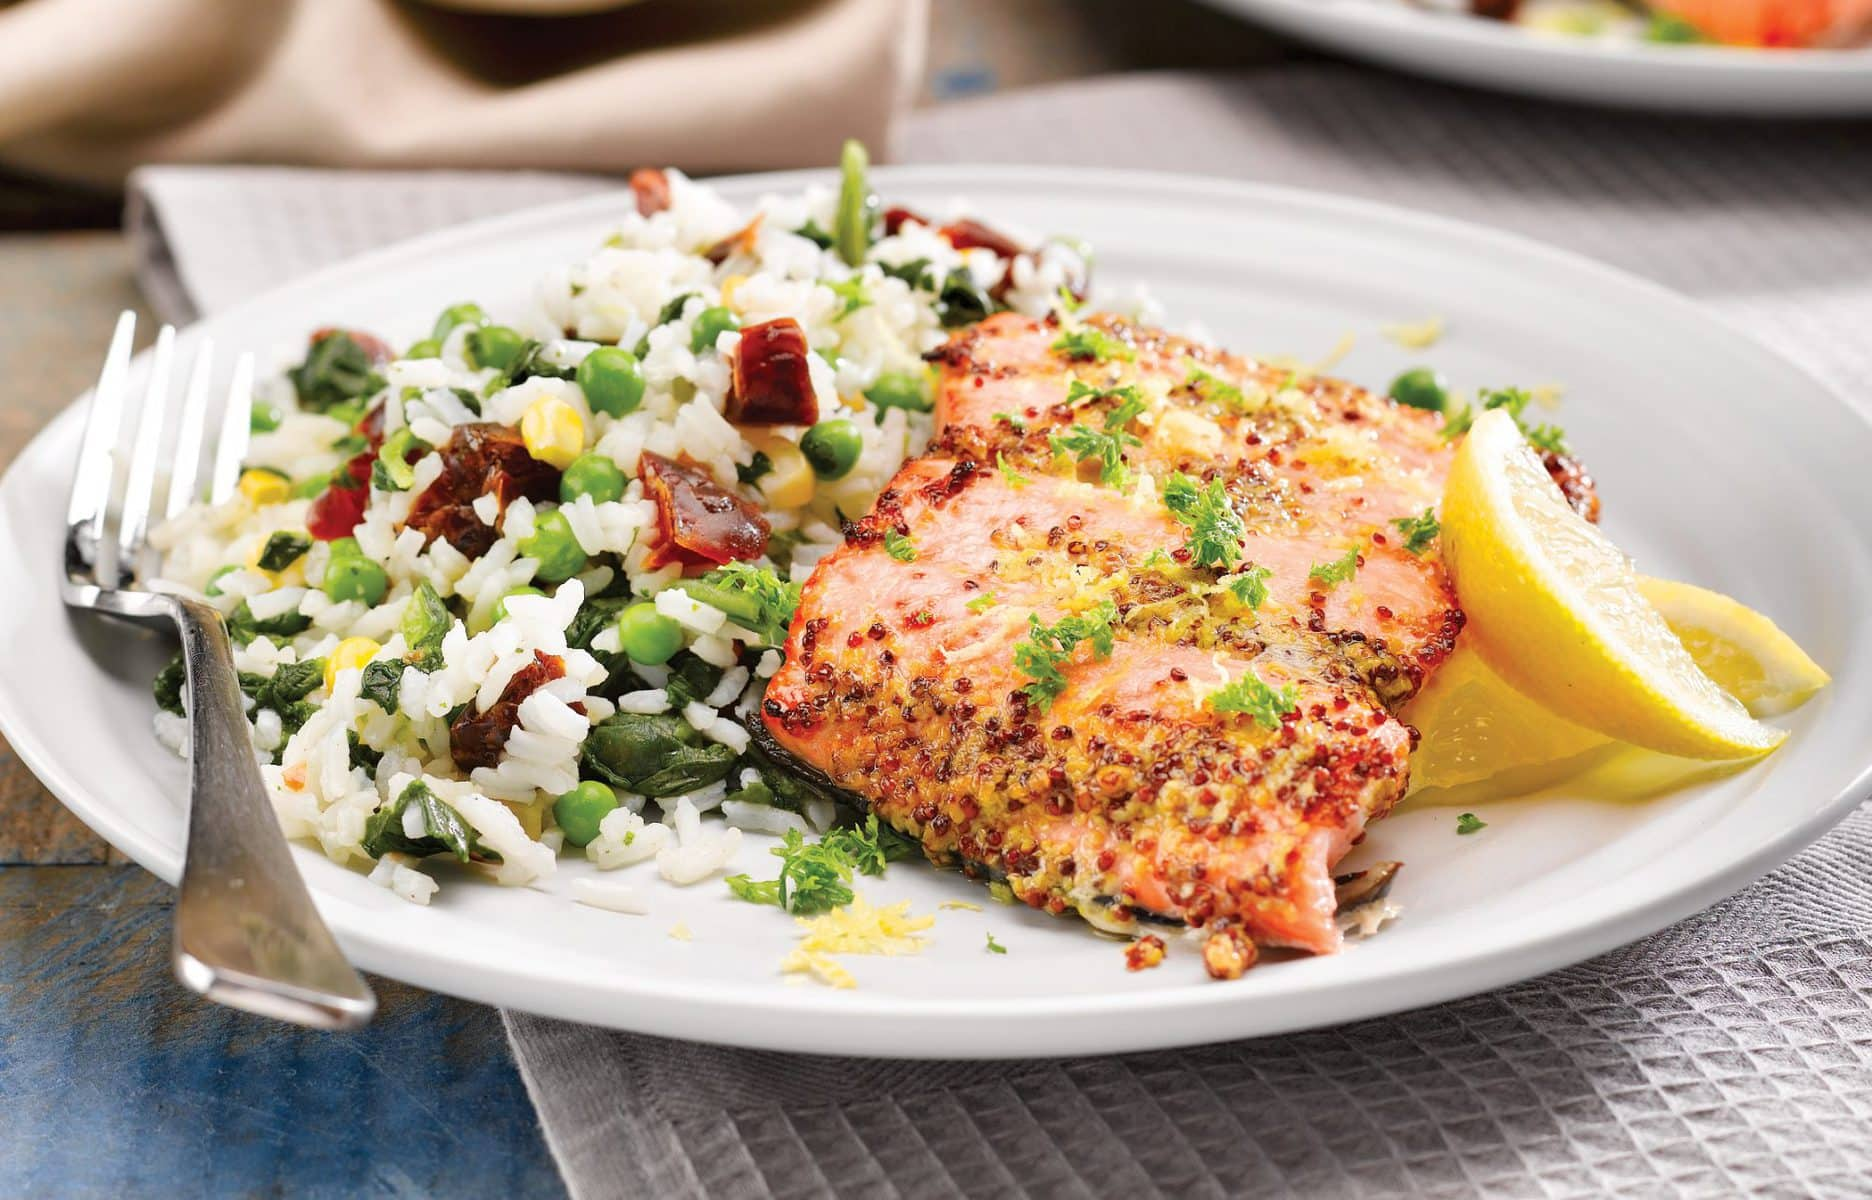 Mustard salmon with vegetable pilaf